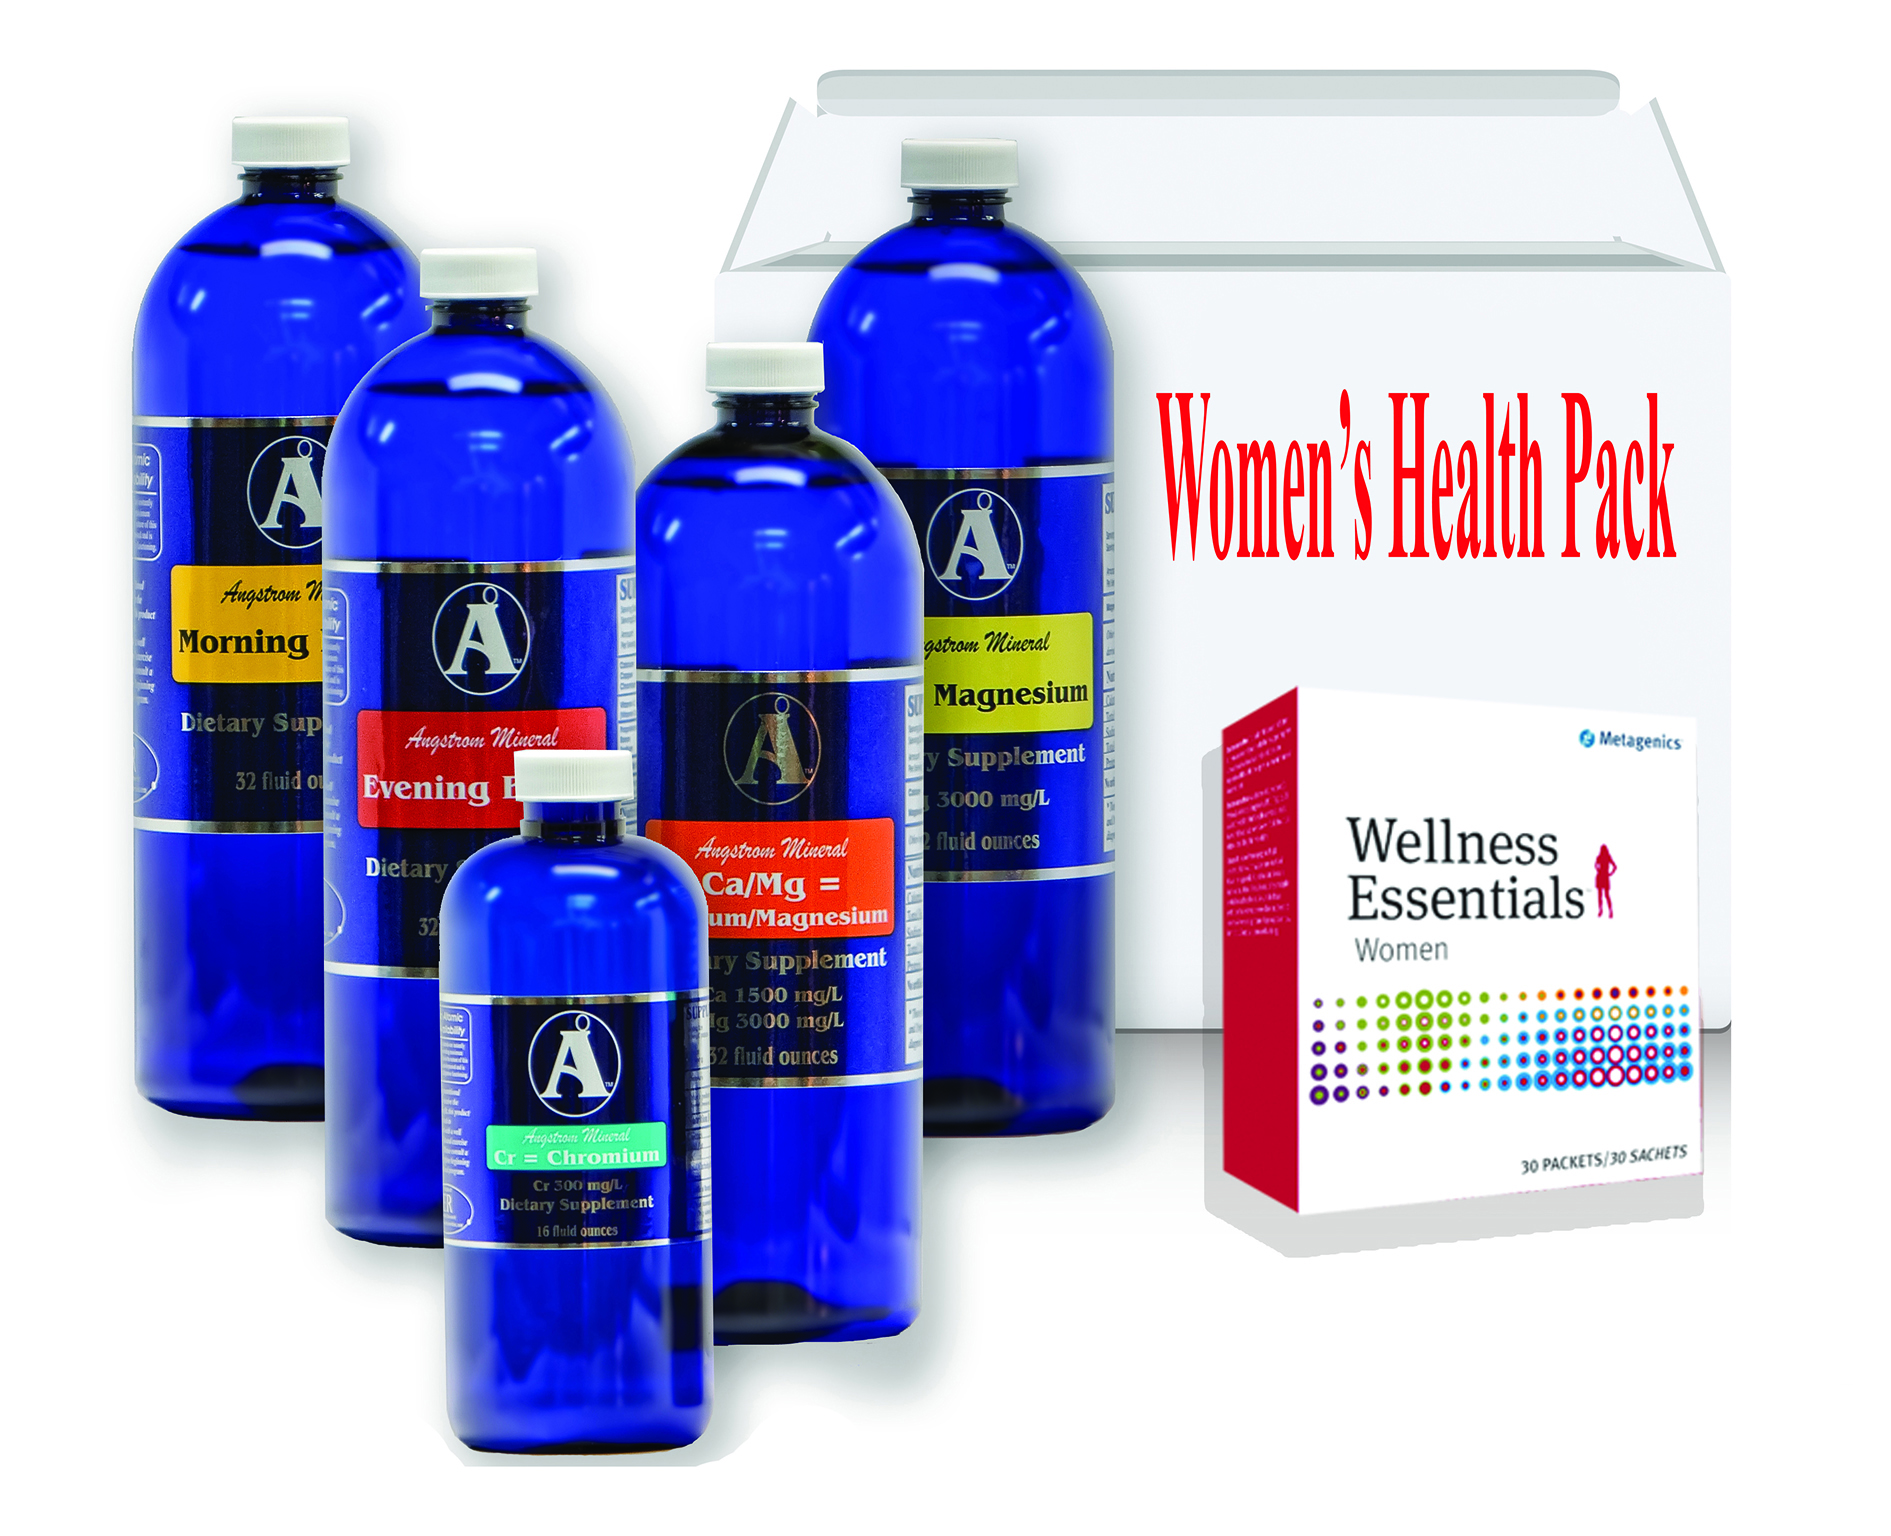 womens-health-pack-plus-jpg.jpg